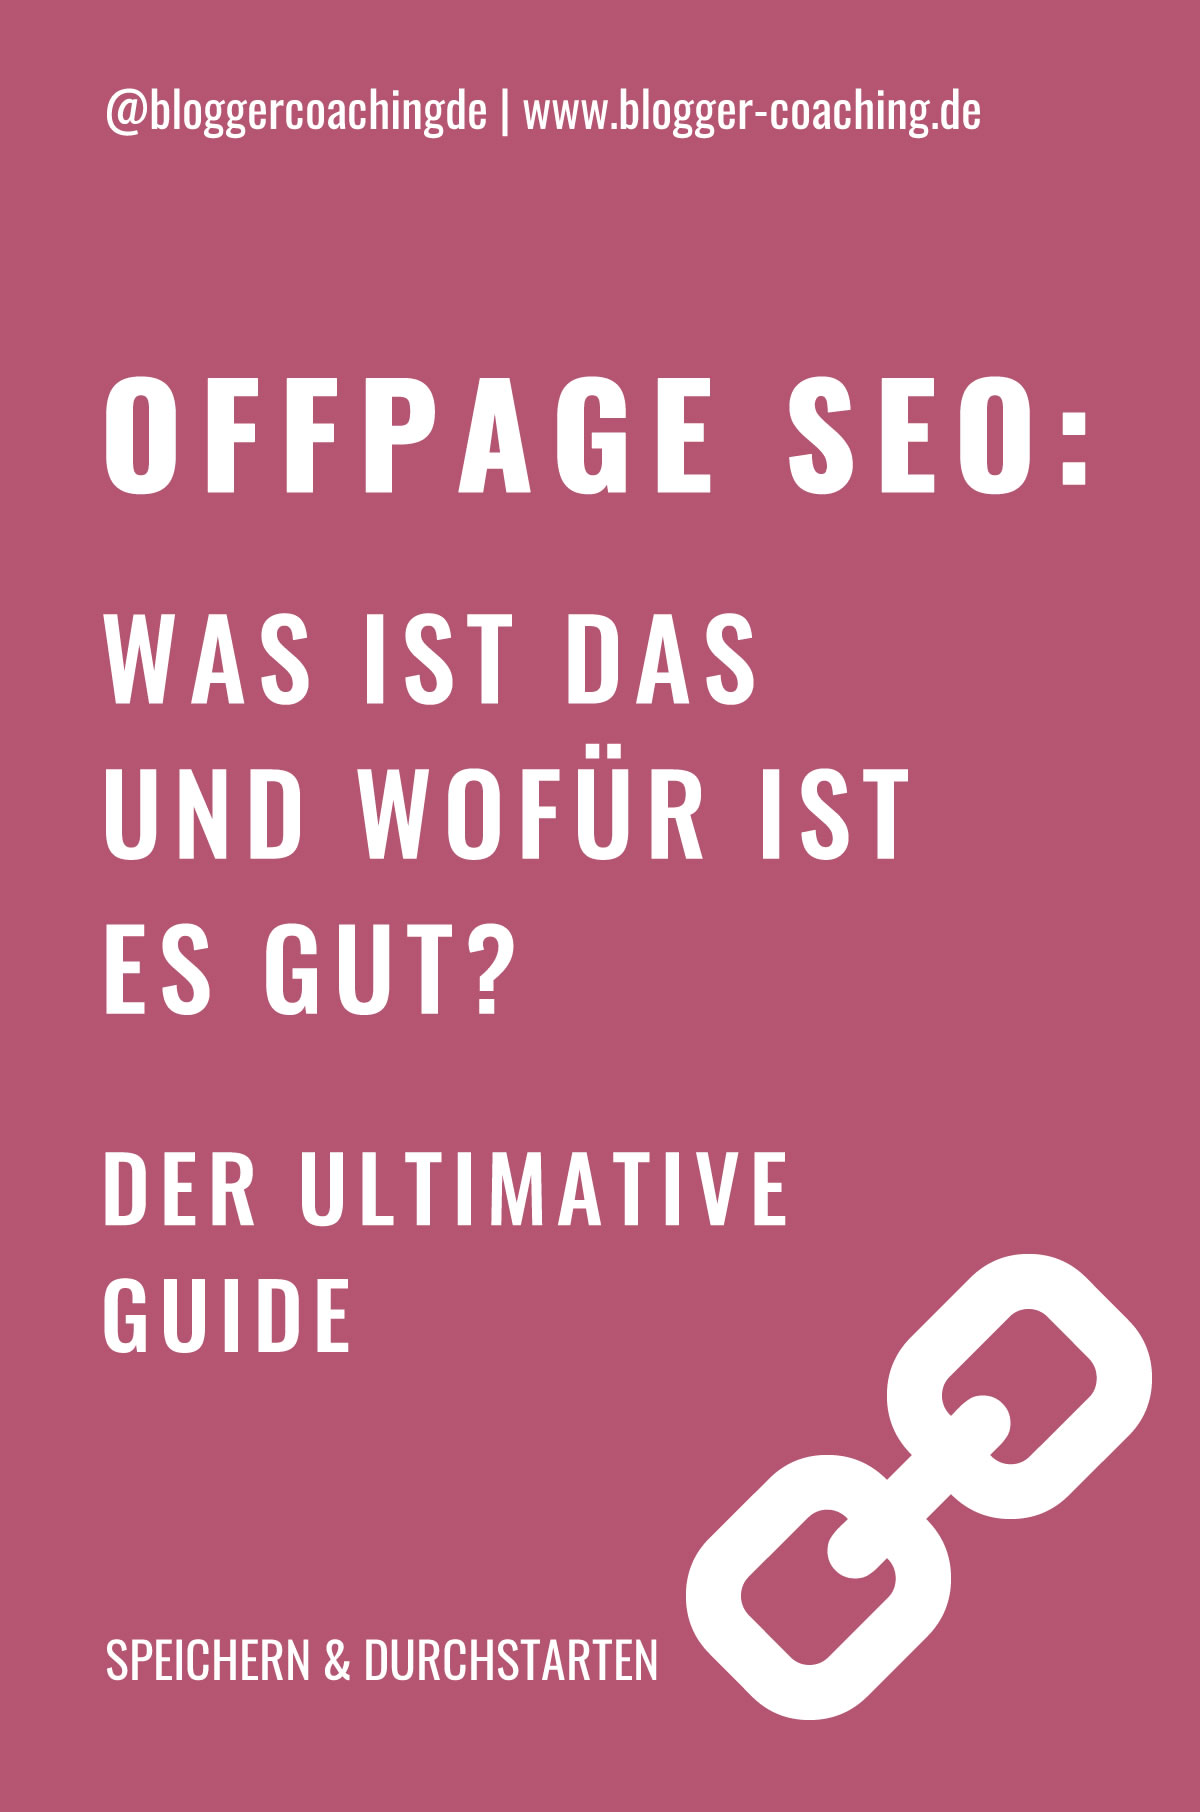 Off-Page SEO für Blogger - Der ultimative Guide | Blogger-Coaching.de - Tipps & Kurse für Blogger